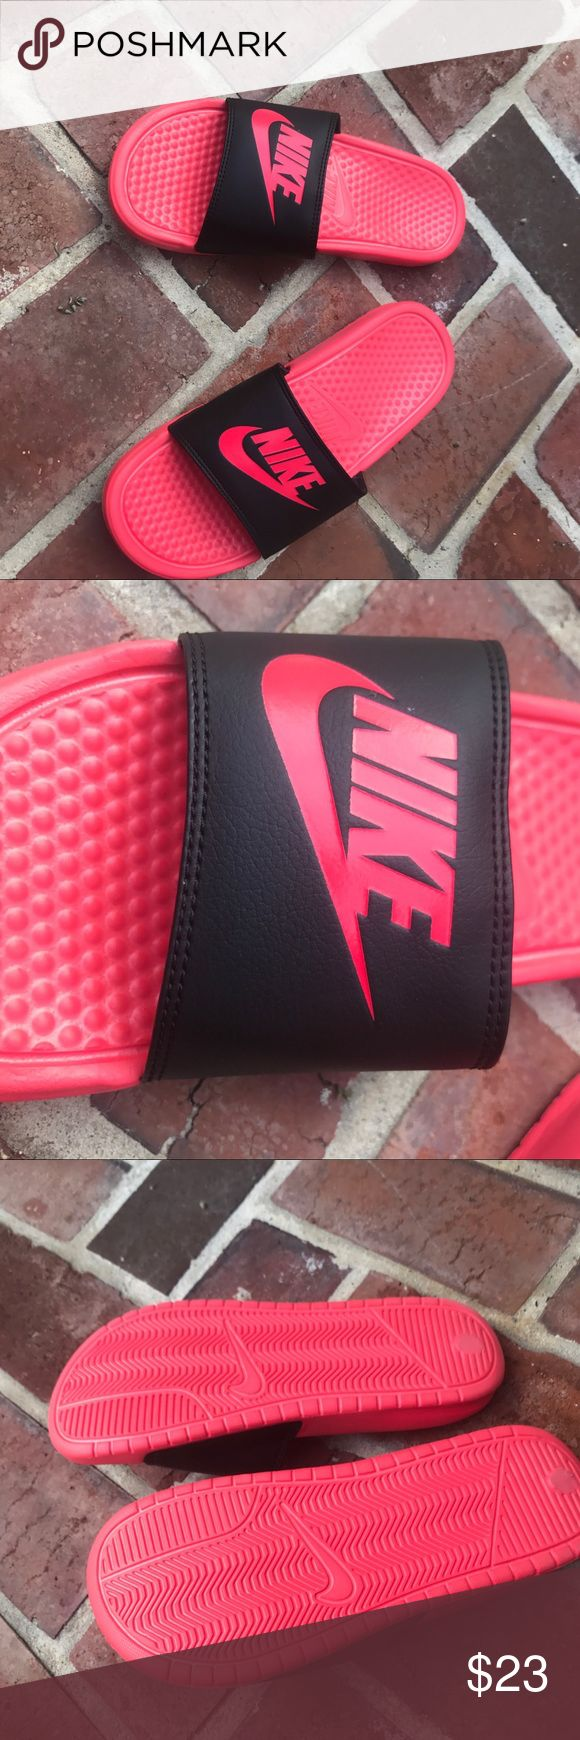 Hot Pink Nike Slides Hot Pink Nike Slides, never worn, in great condition size 8.5 Nike Shoes Slippers